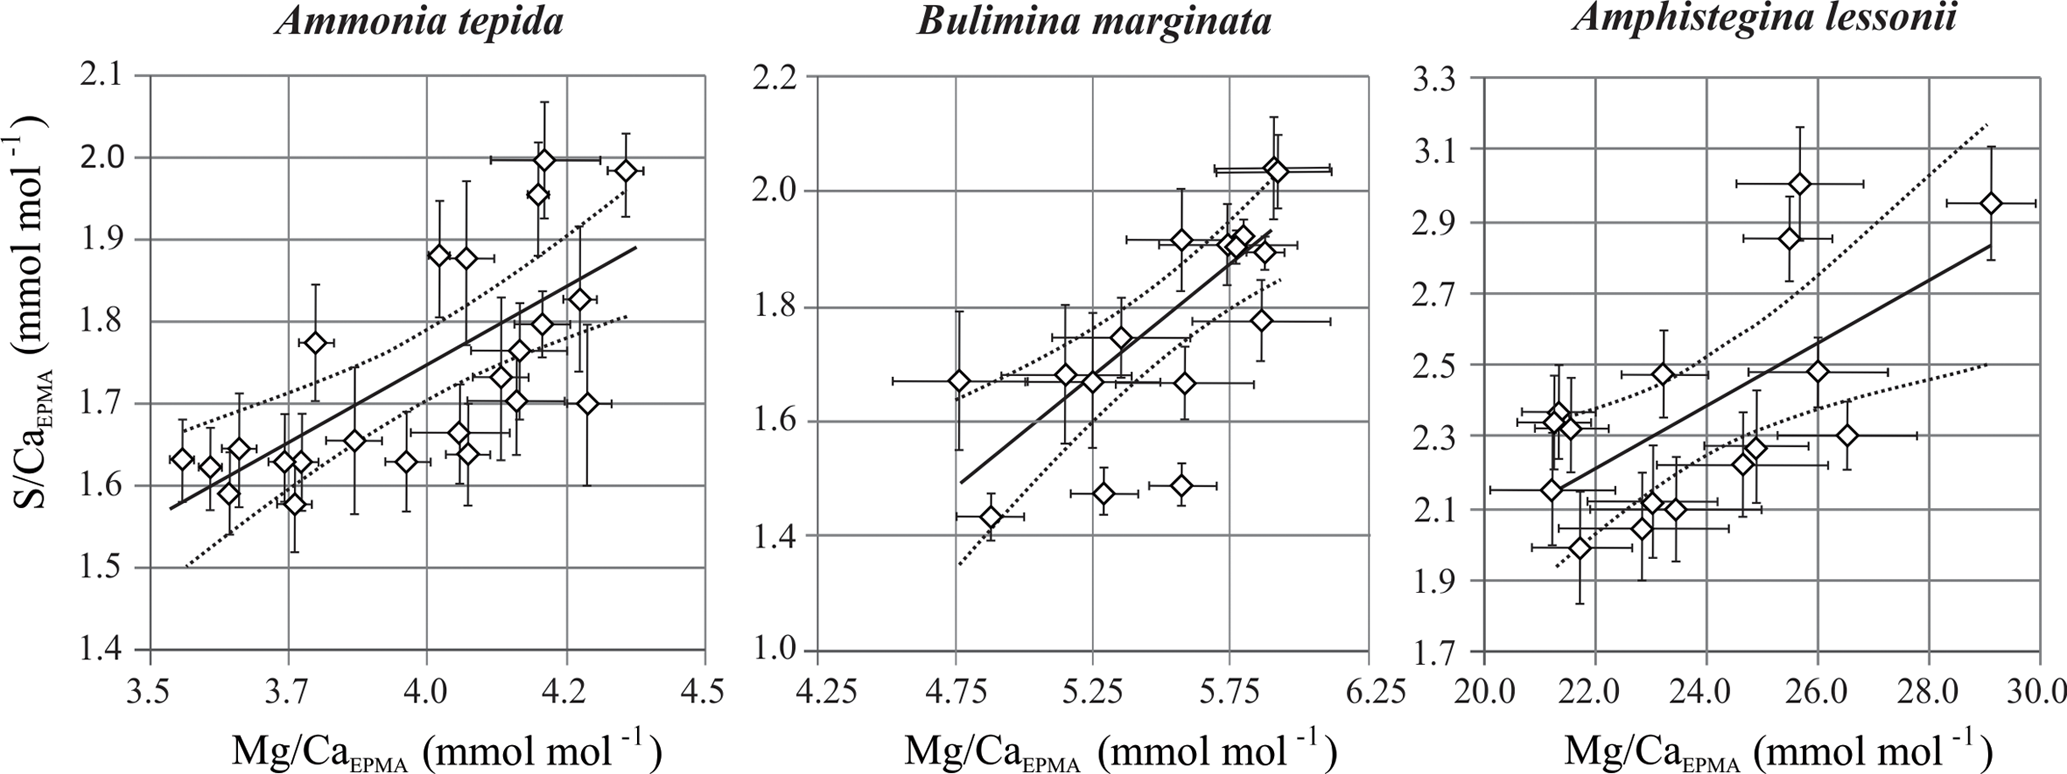 BG - Coupled calcium and inorganic carbon uptake suggested by